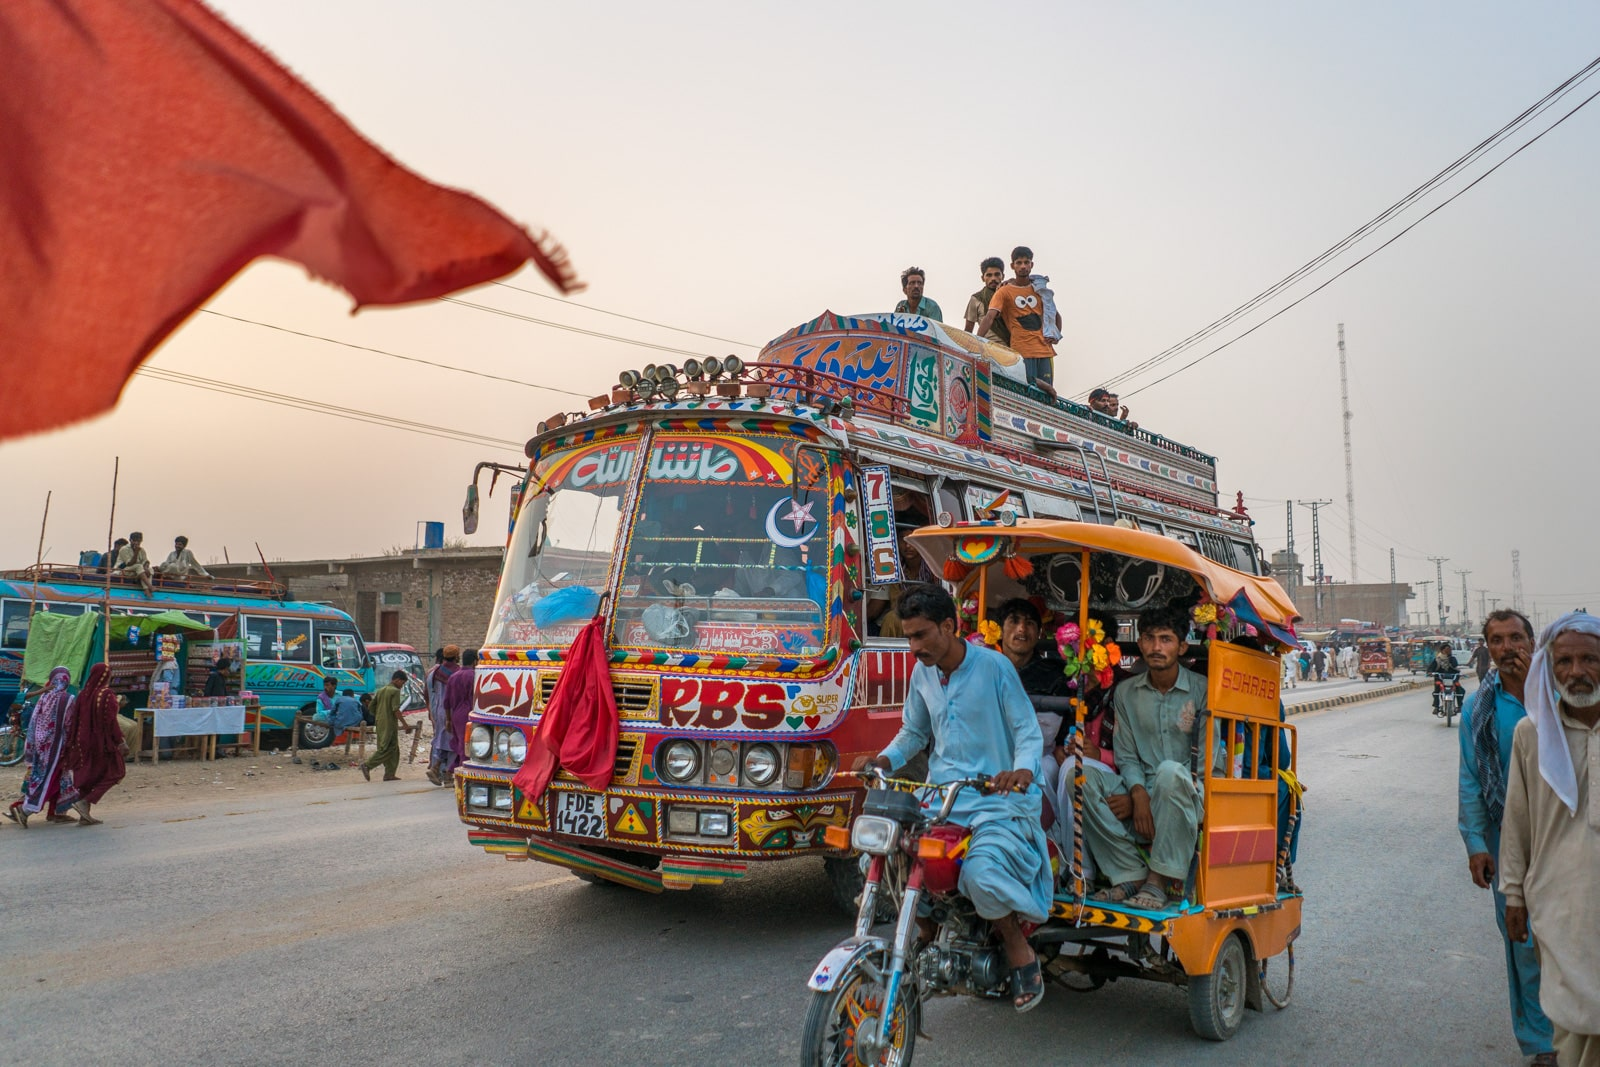 The Urs of Lal Shahbaz Qalandar in Sehwan, Pakistan - Acid tripper bus driving into Sehwan - Lost With Purpose travel blog